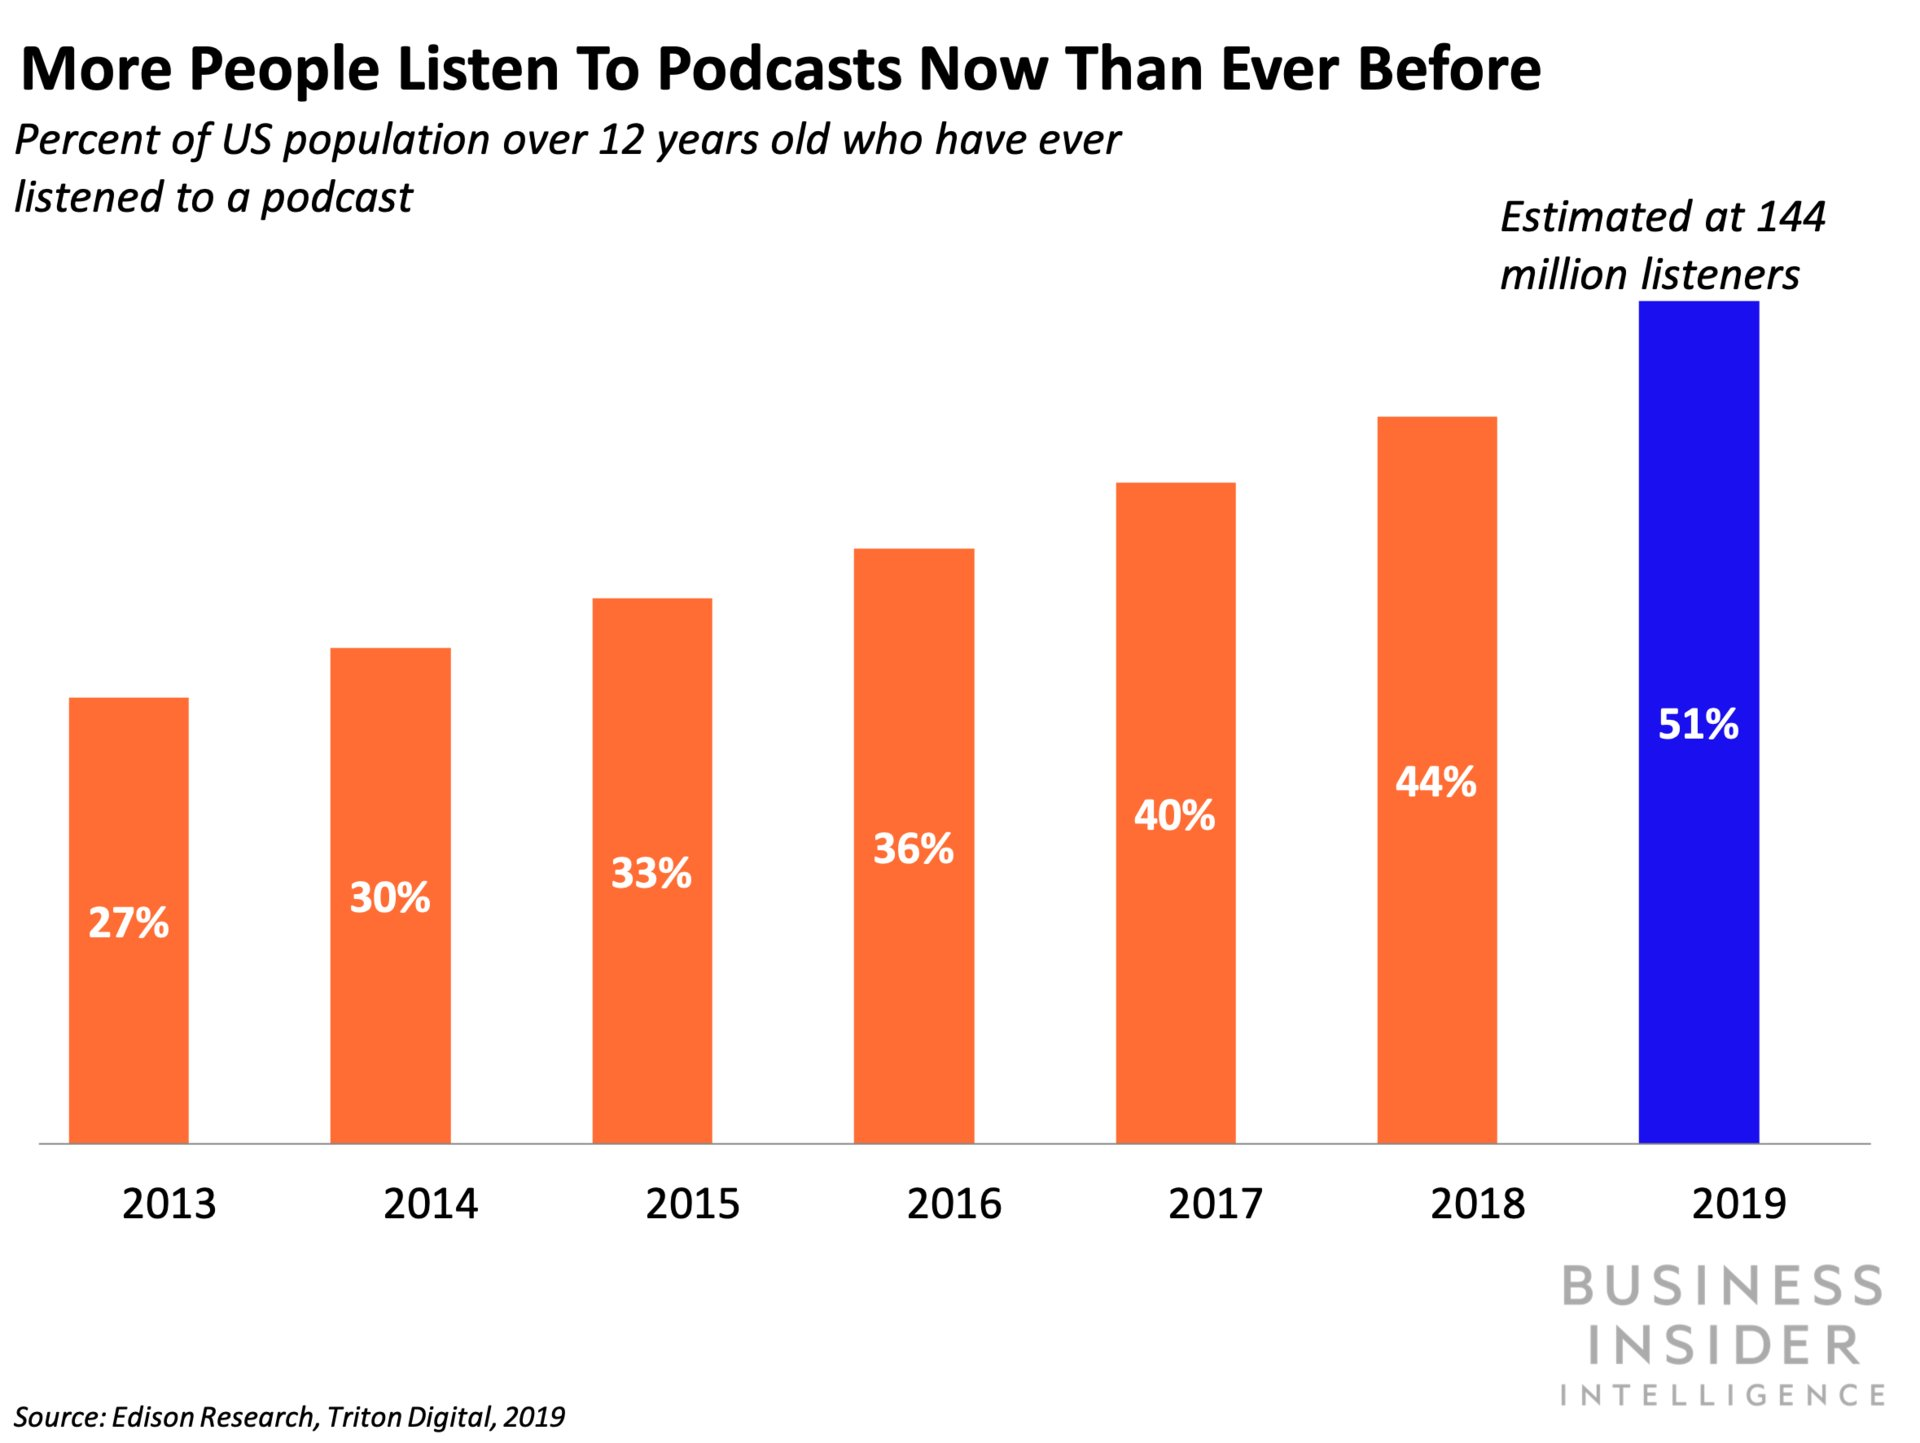 YouTube is positioned to be the next podcasting giant